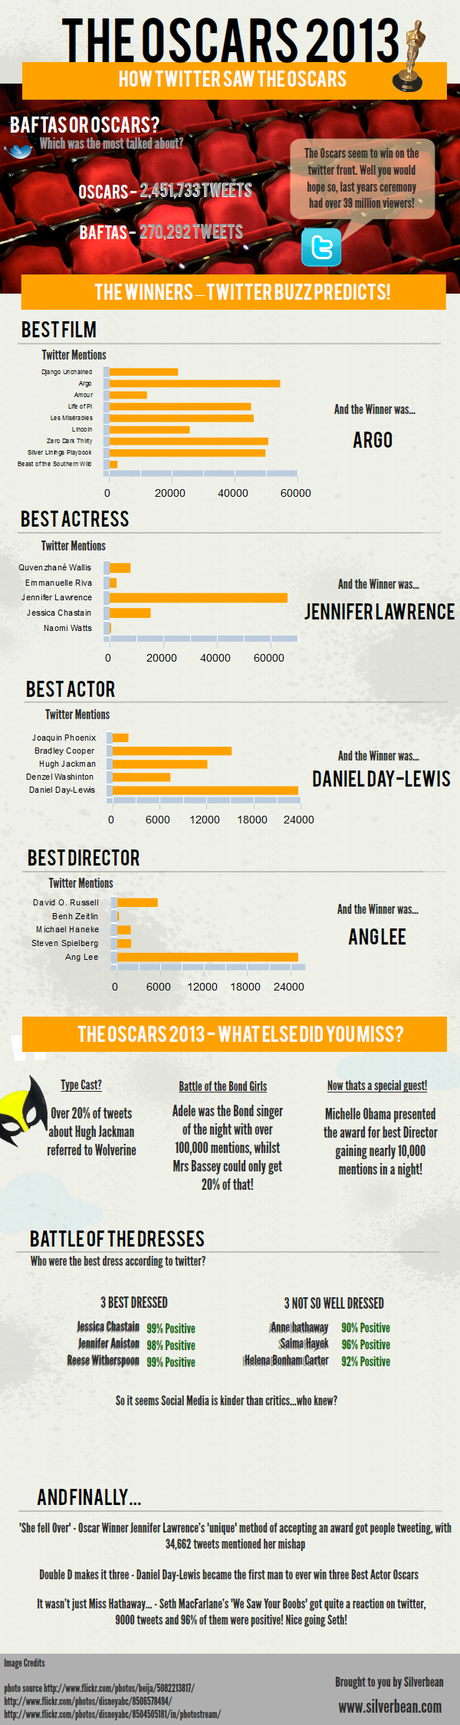 How Close Twitter Mentions Predicted The Oscar Winners Infographic